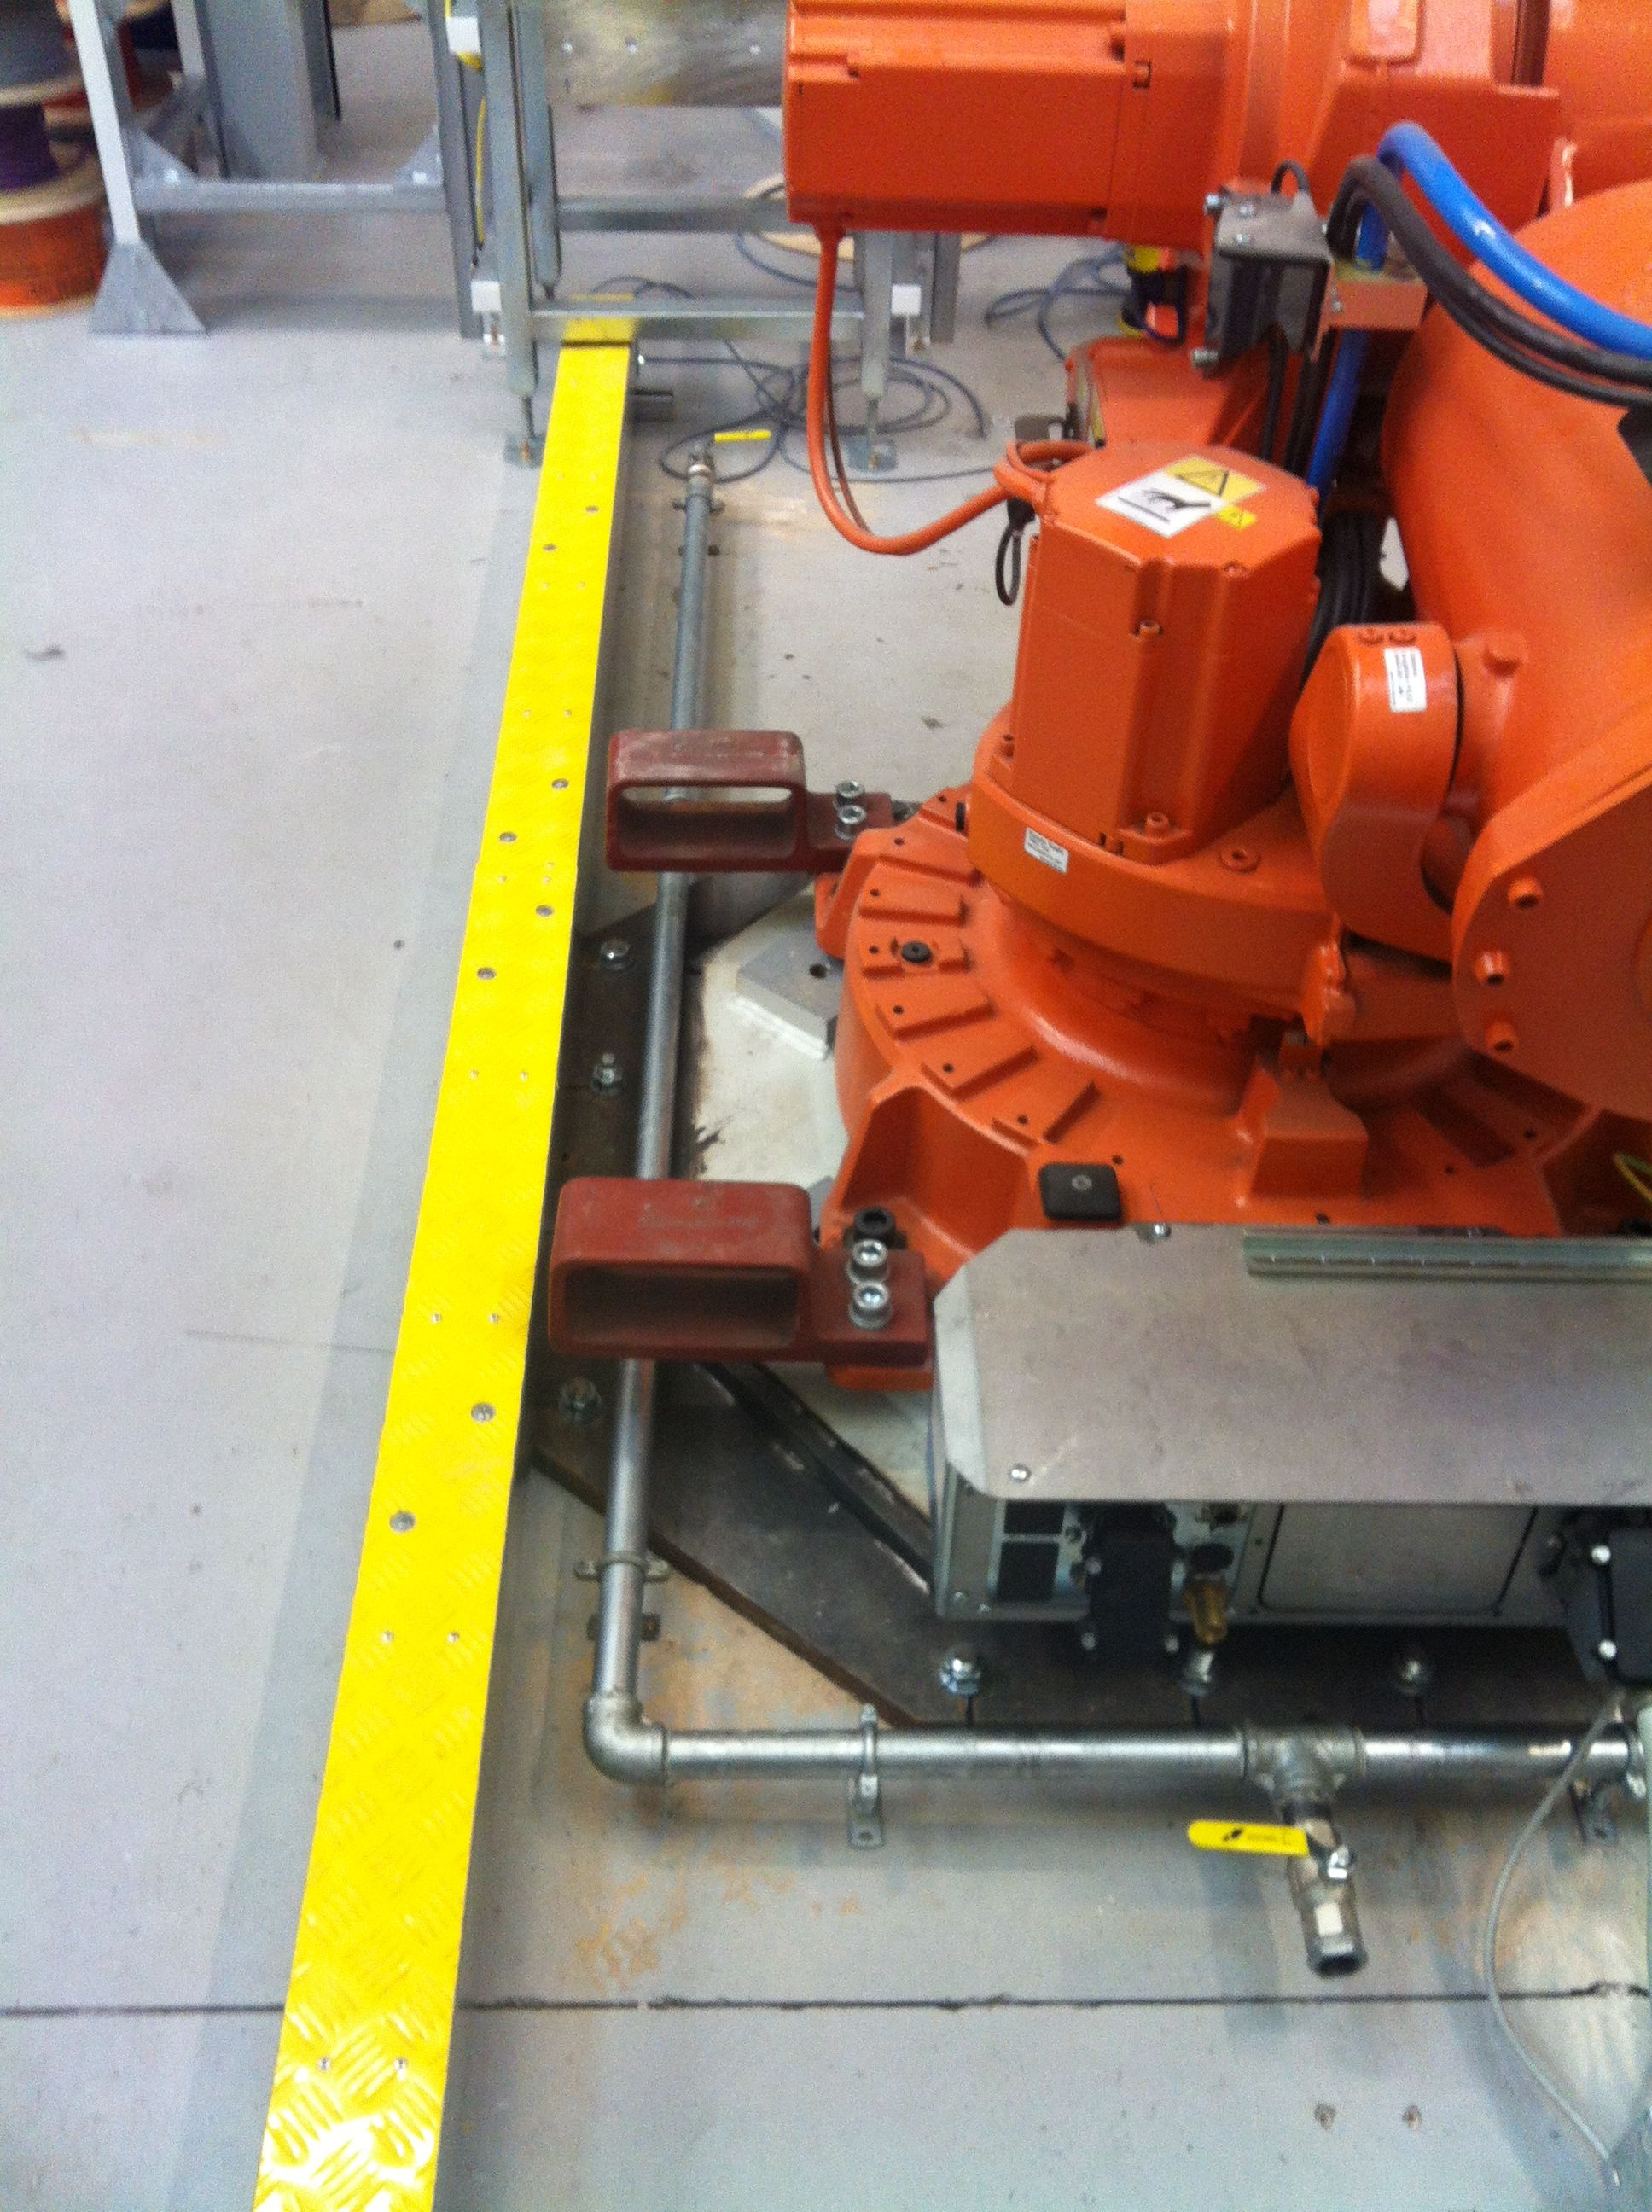 Shows final valve pipework and conveyor take off. (With